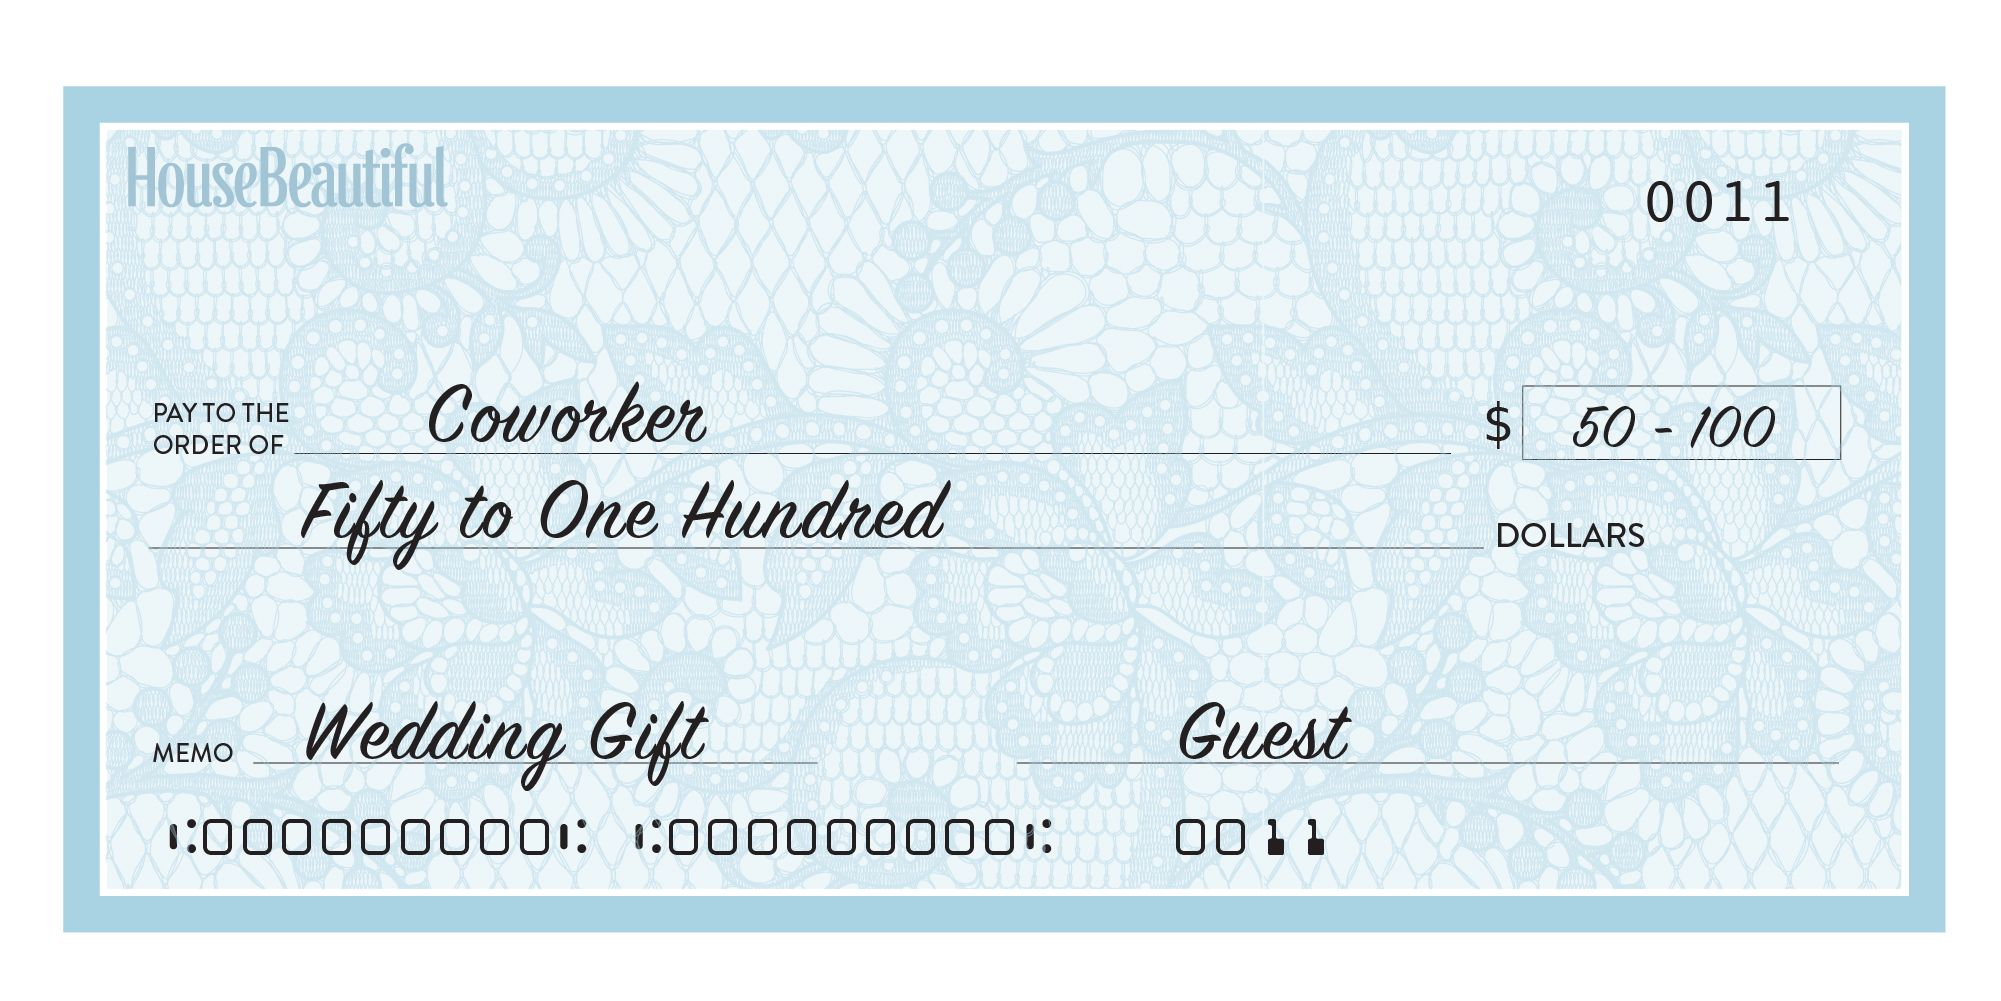 Wedding Etiquette How Much Money To Give - Tbrb.info